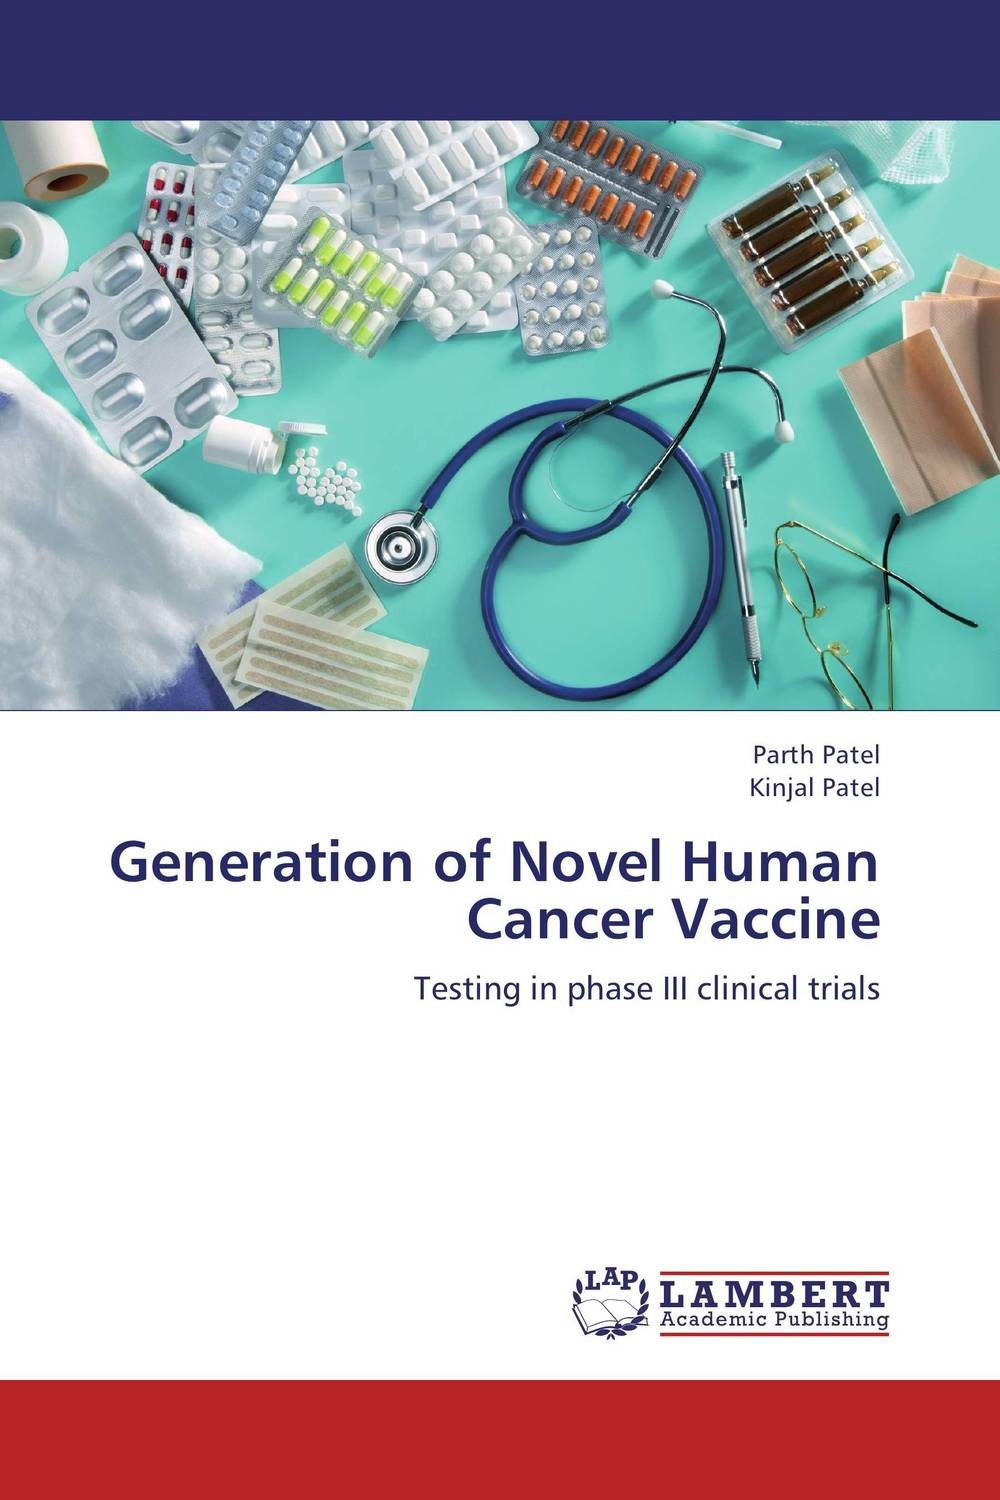 Фото Generation of Novel Human Cancer Vaccine cervical cancer in amhara region in ethiopia